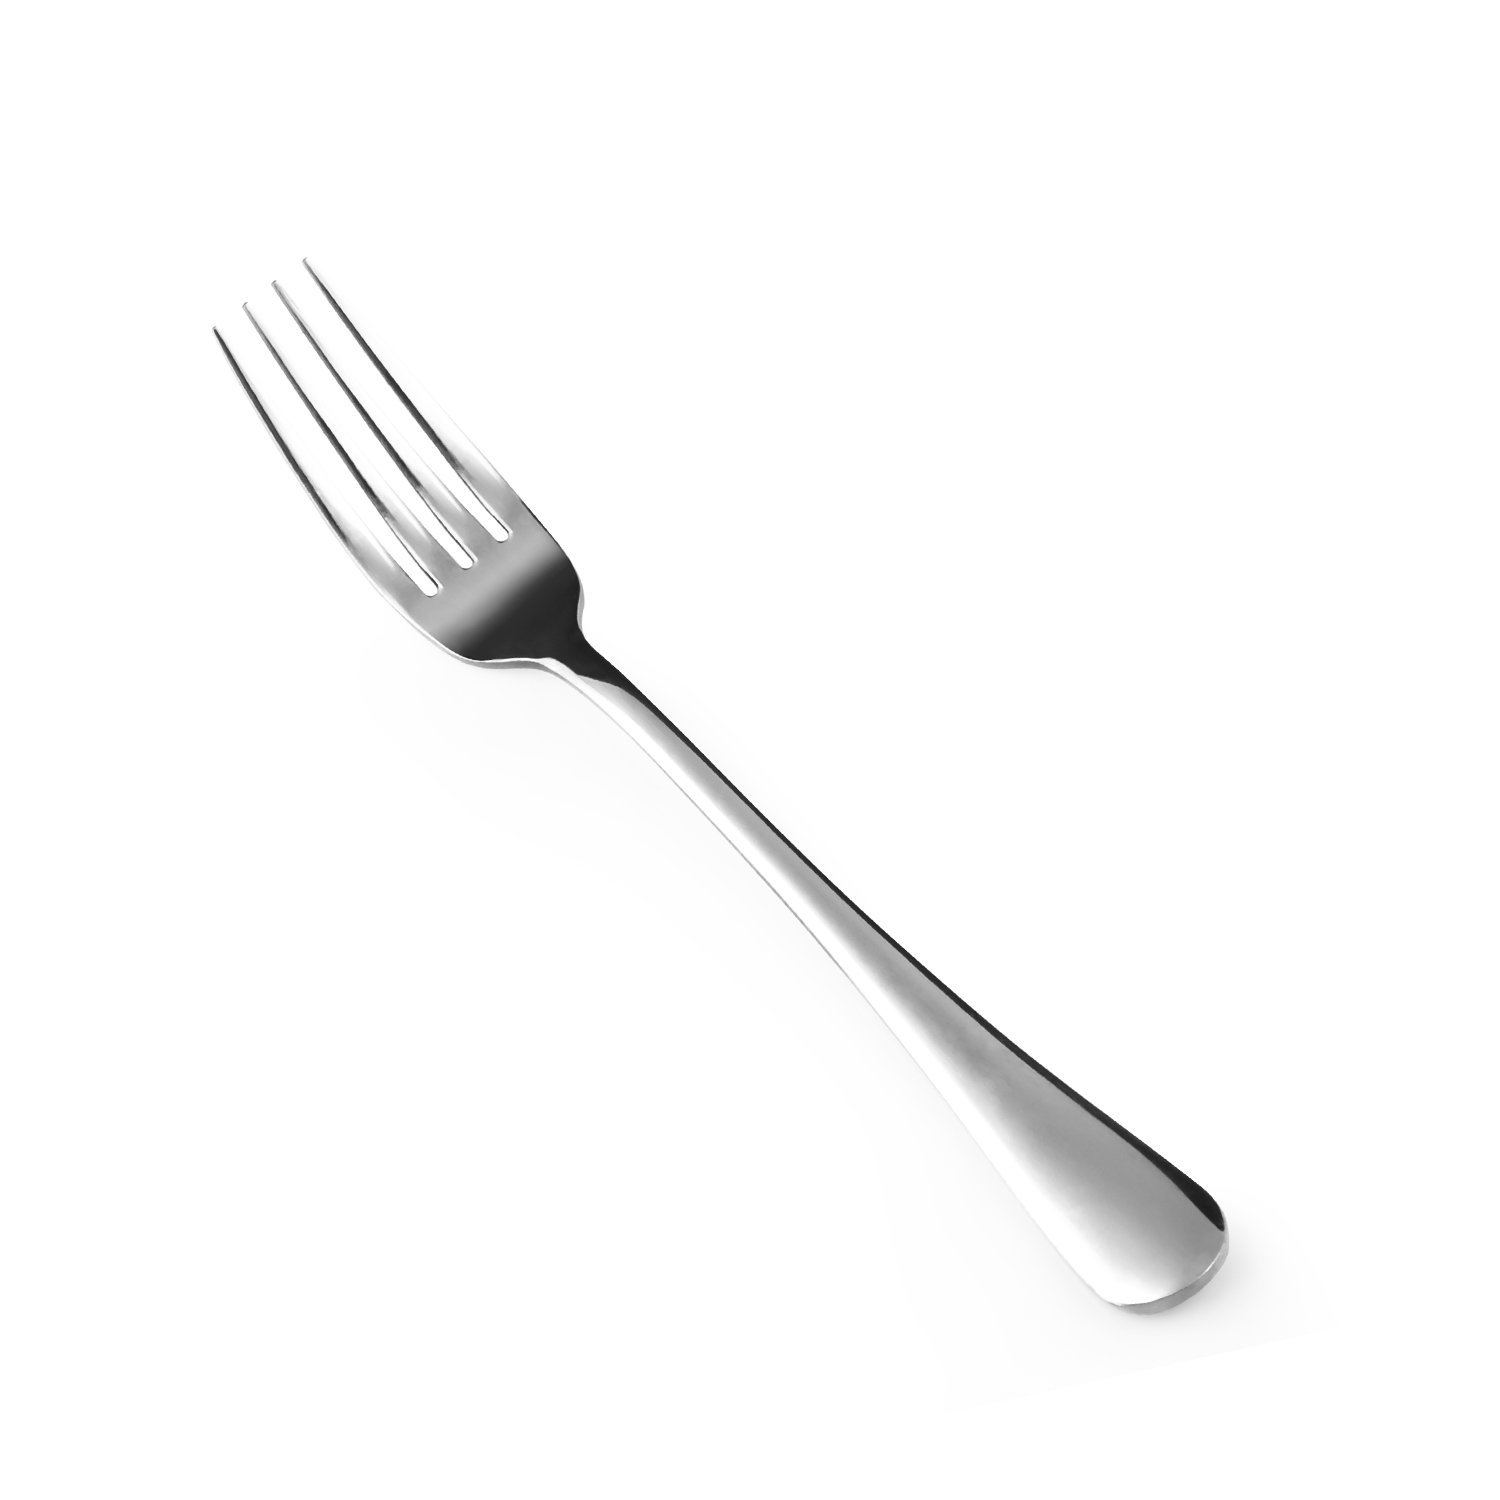 Hiware 12-piece Good Stainless Steel Dinner Forks Cutlery